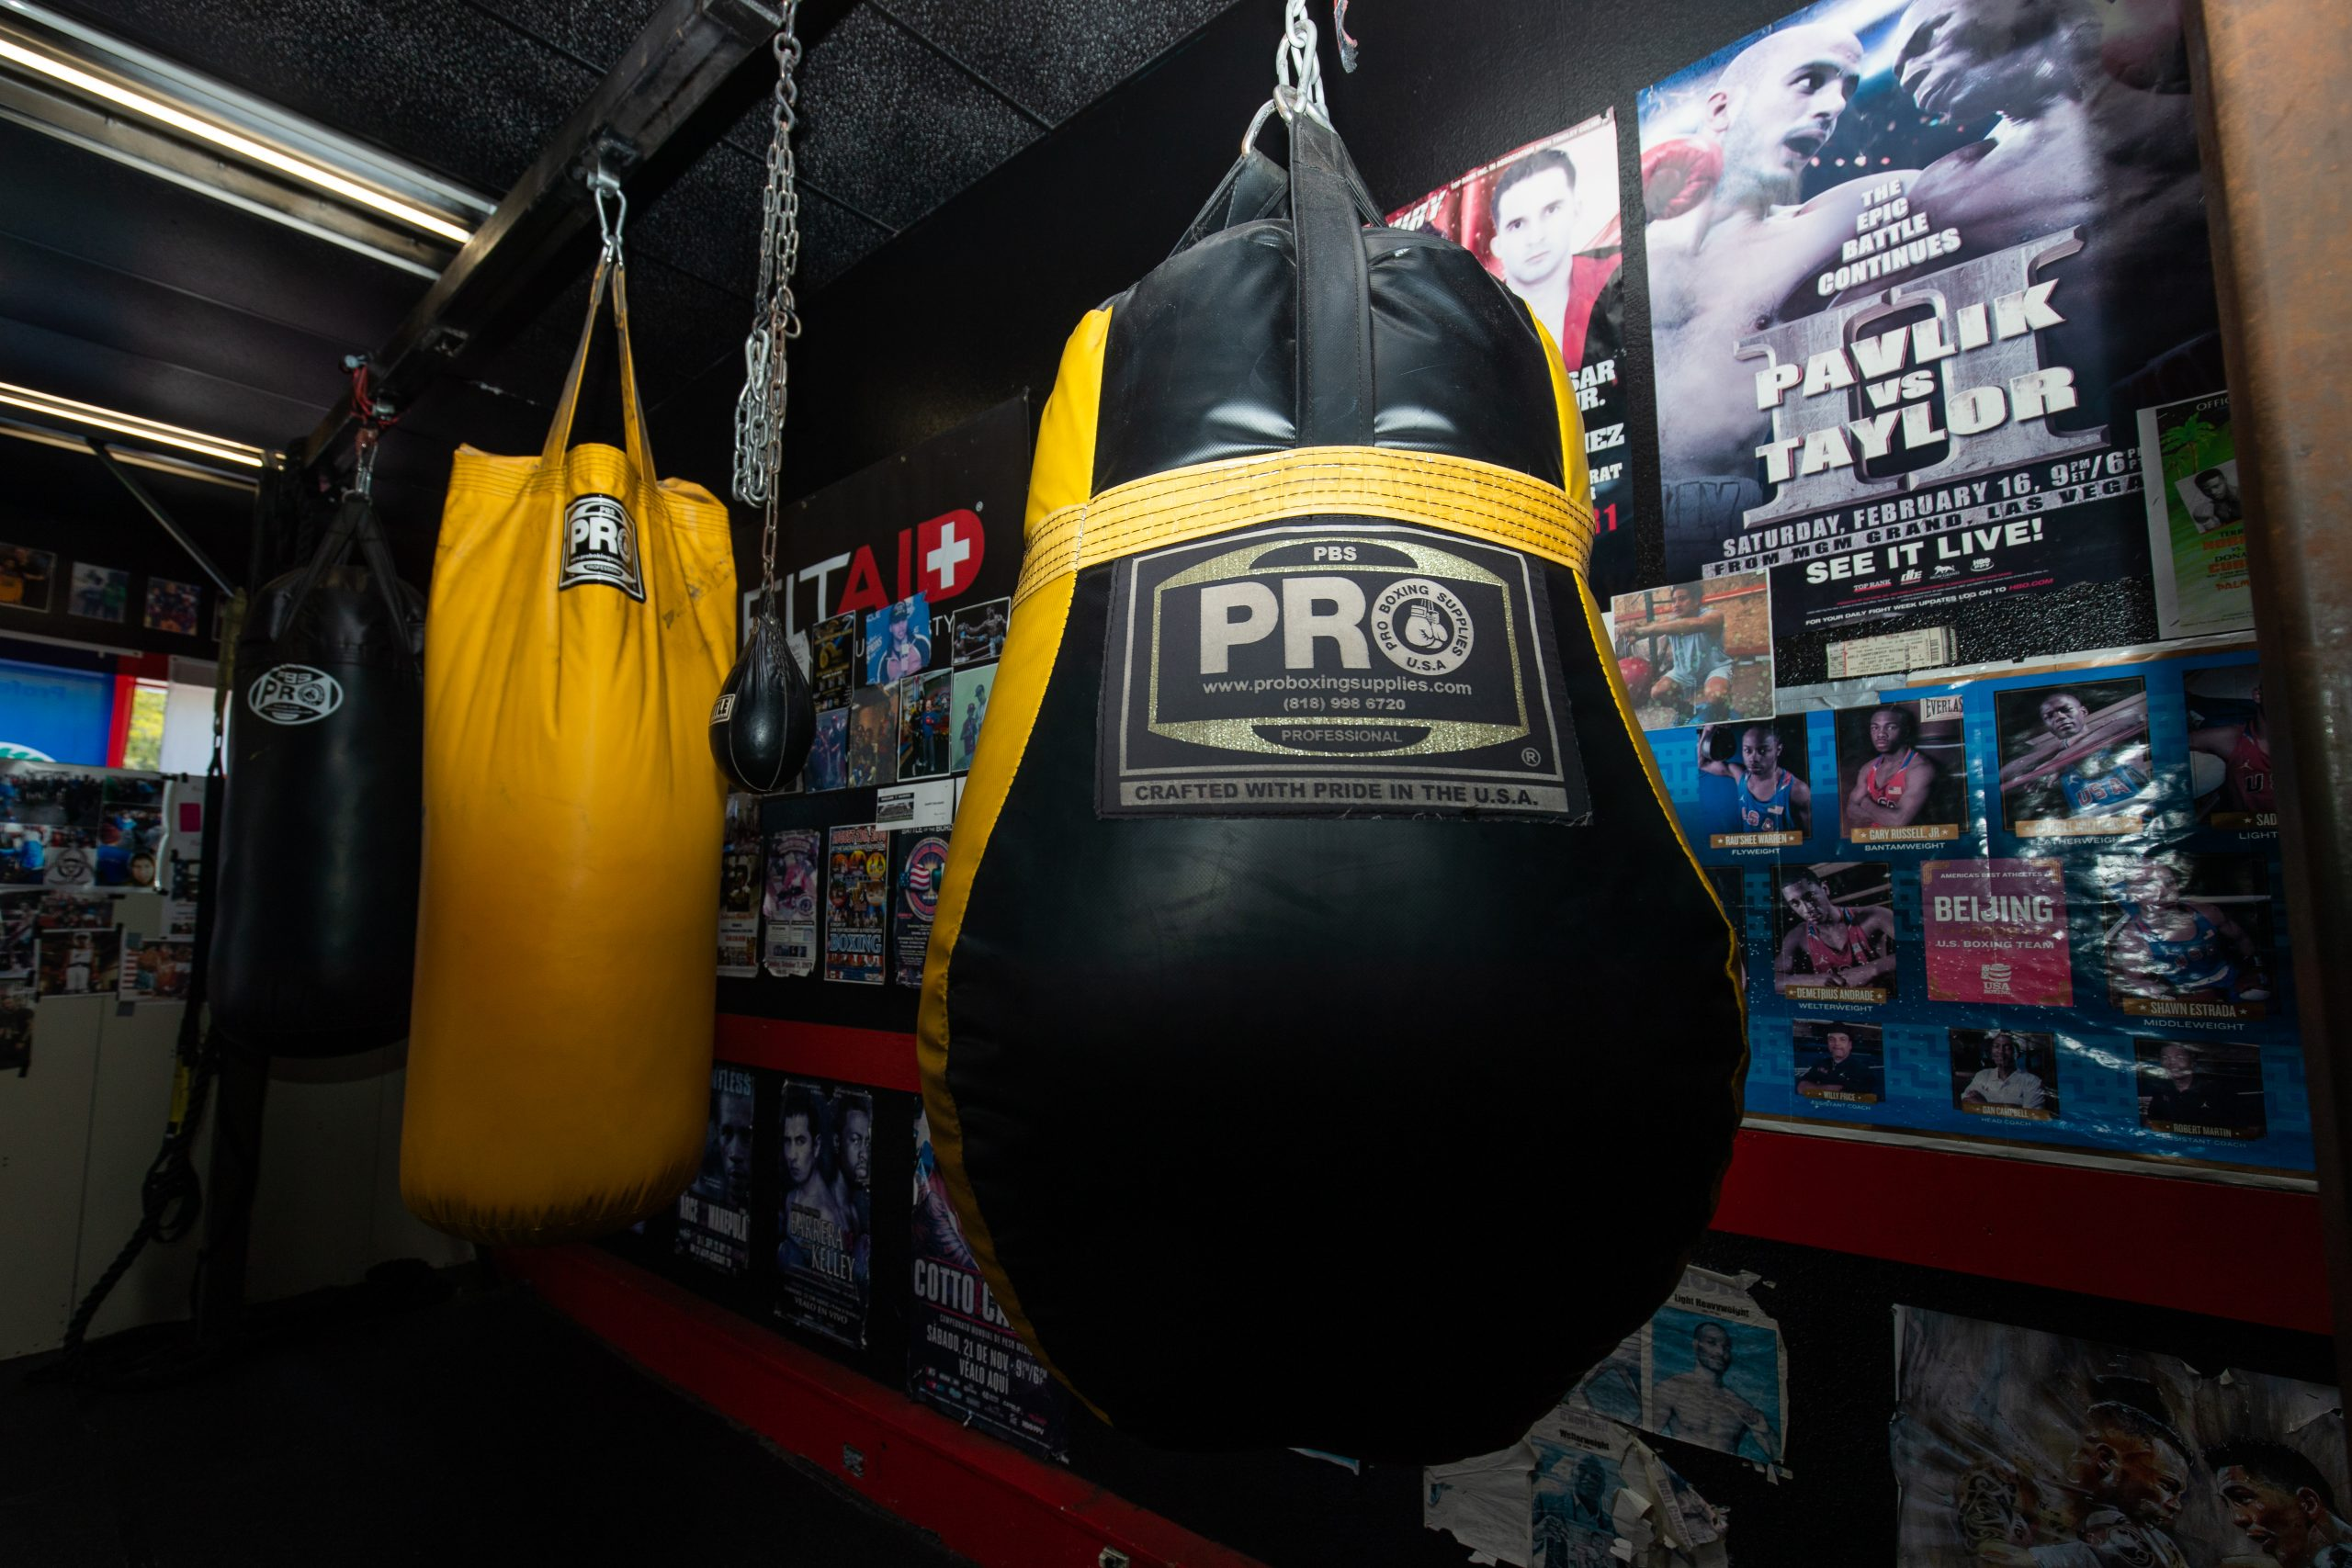 Punching bags hang from the ceilings amongst more posters of boxers and fight events.